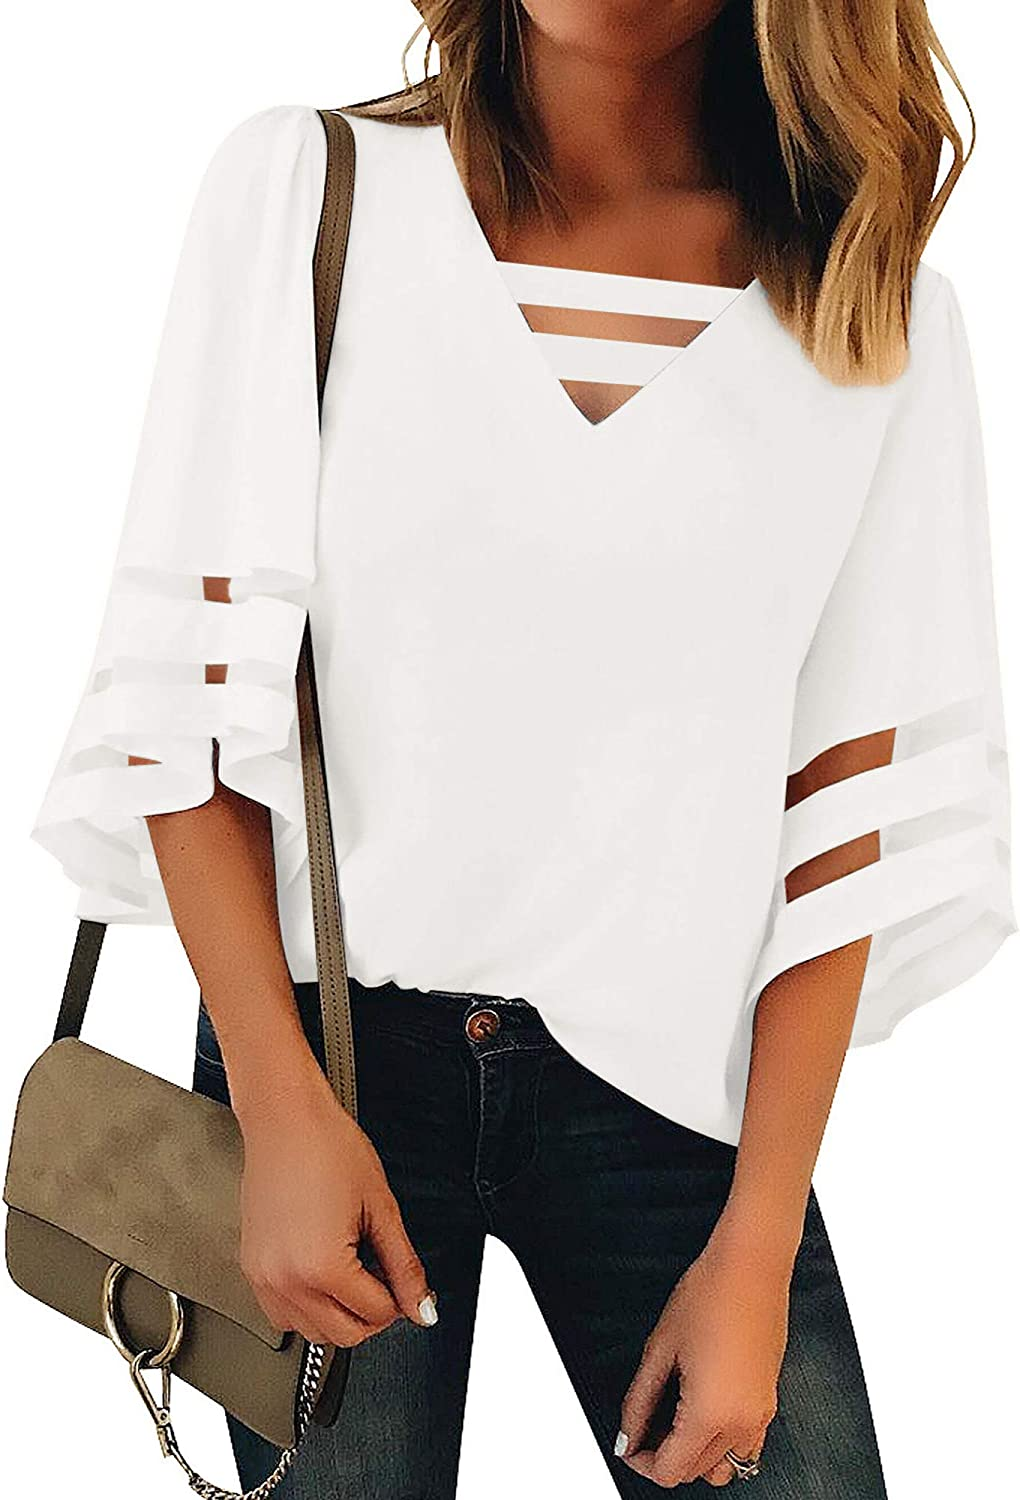 luvamia Women Casual Strappy V Neck Blouse 3/4 Bell Sleeve Mesh Panel Shirts Top